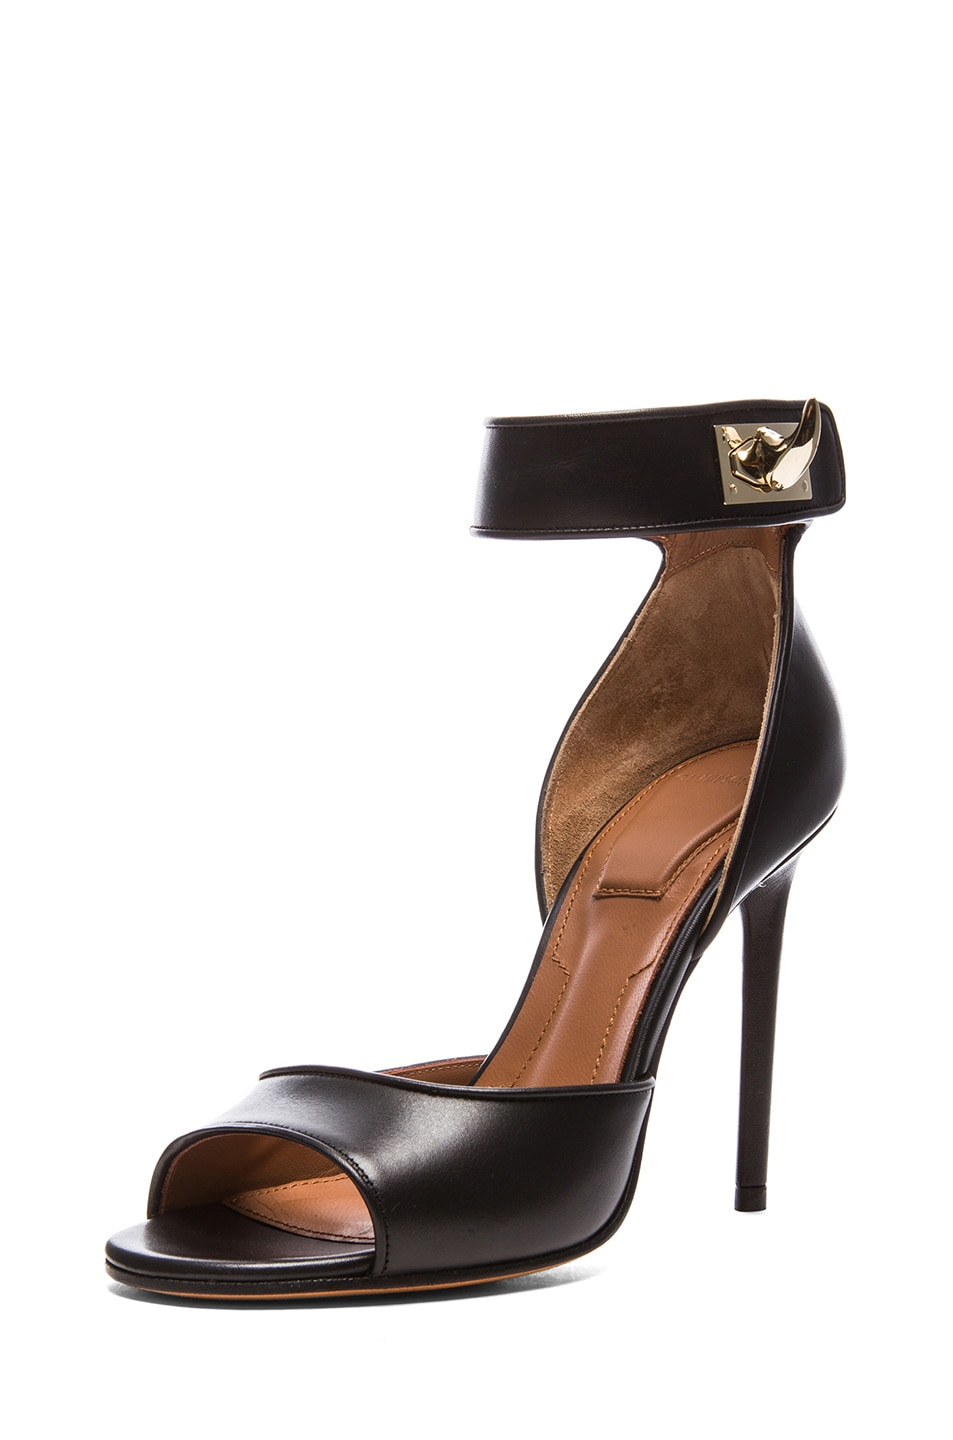 Image 2 of GIVENCHY Shark Lock Calfskin Leather Heels in Black